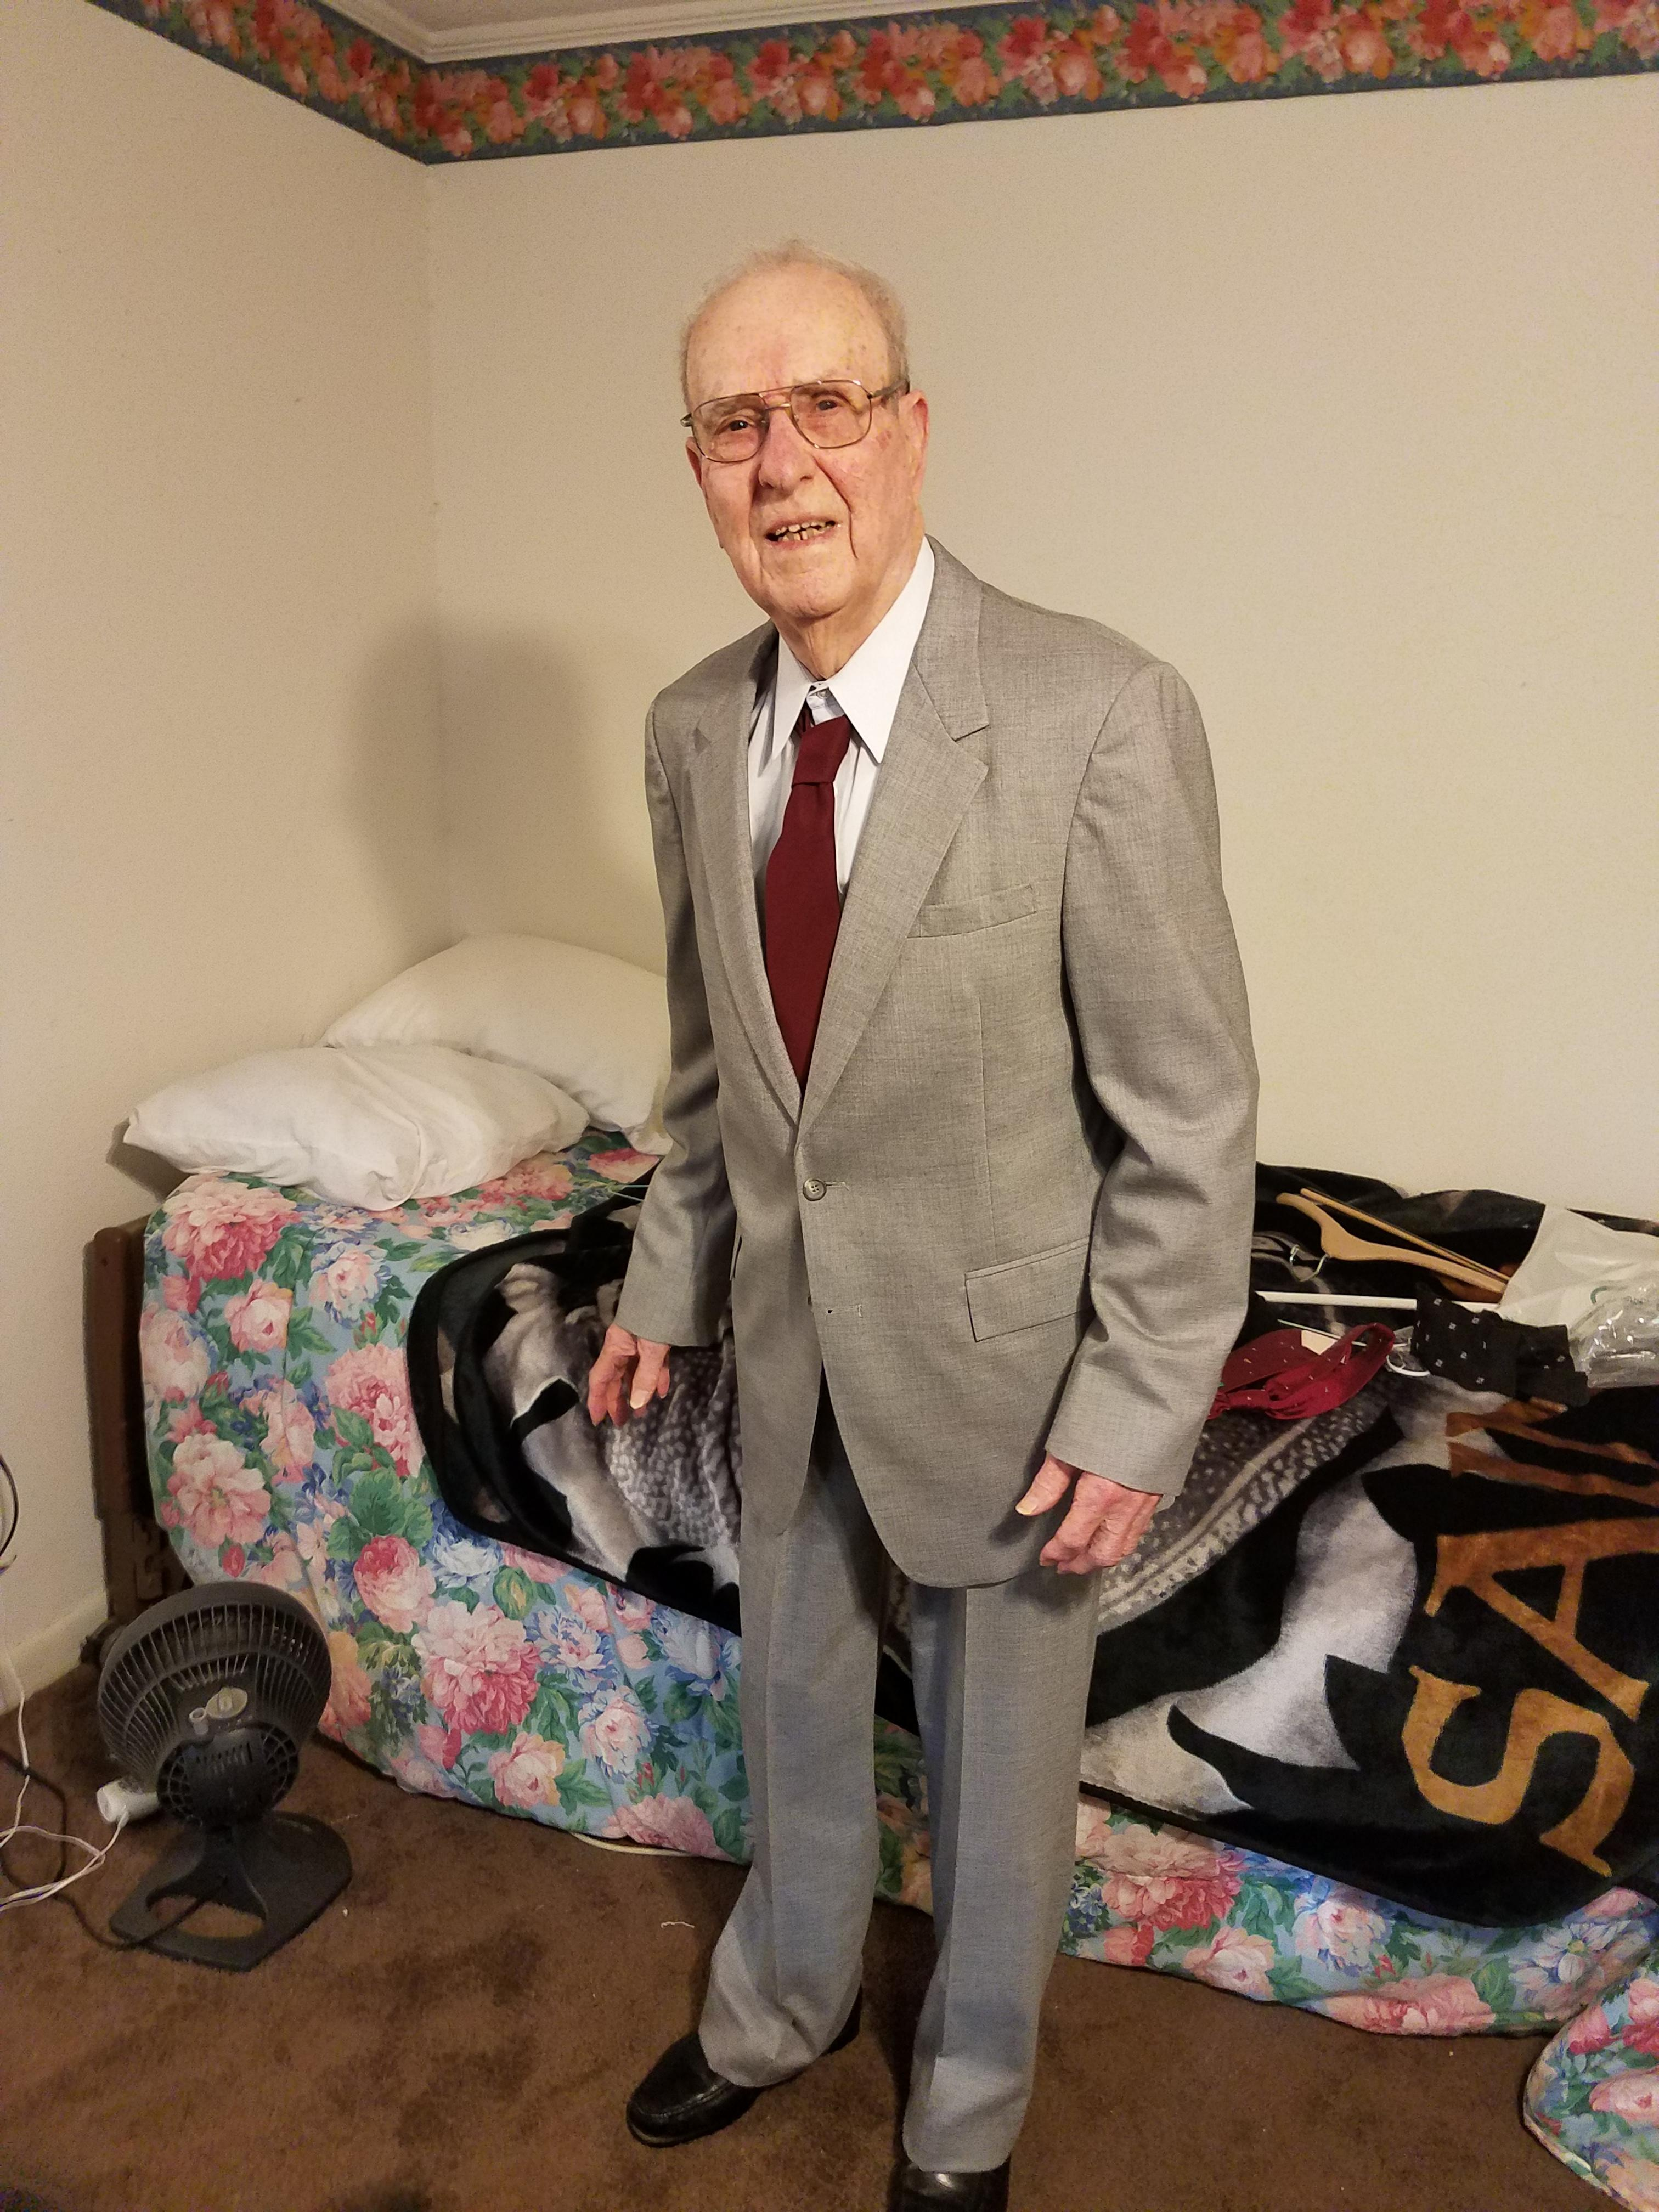 [Image] This is my 92 year old Great Grandfather. I've been his primary caregiver for 3 years now. He was diagnosed with dementia and Alzheimer's 10 years ago. If he can smile, so can you.